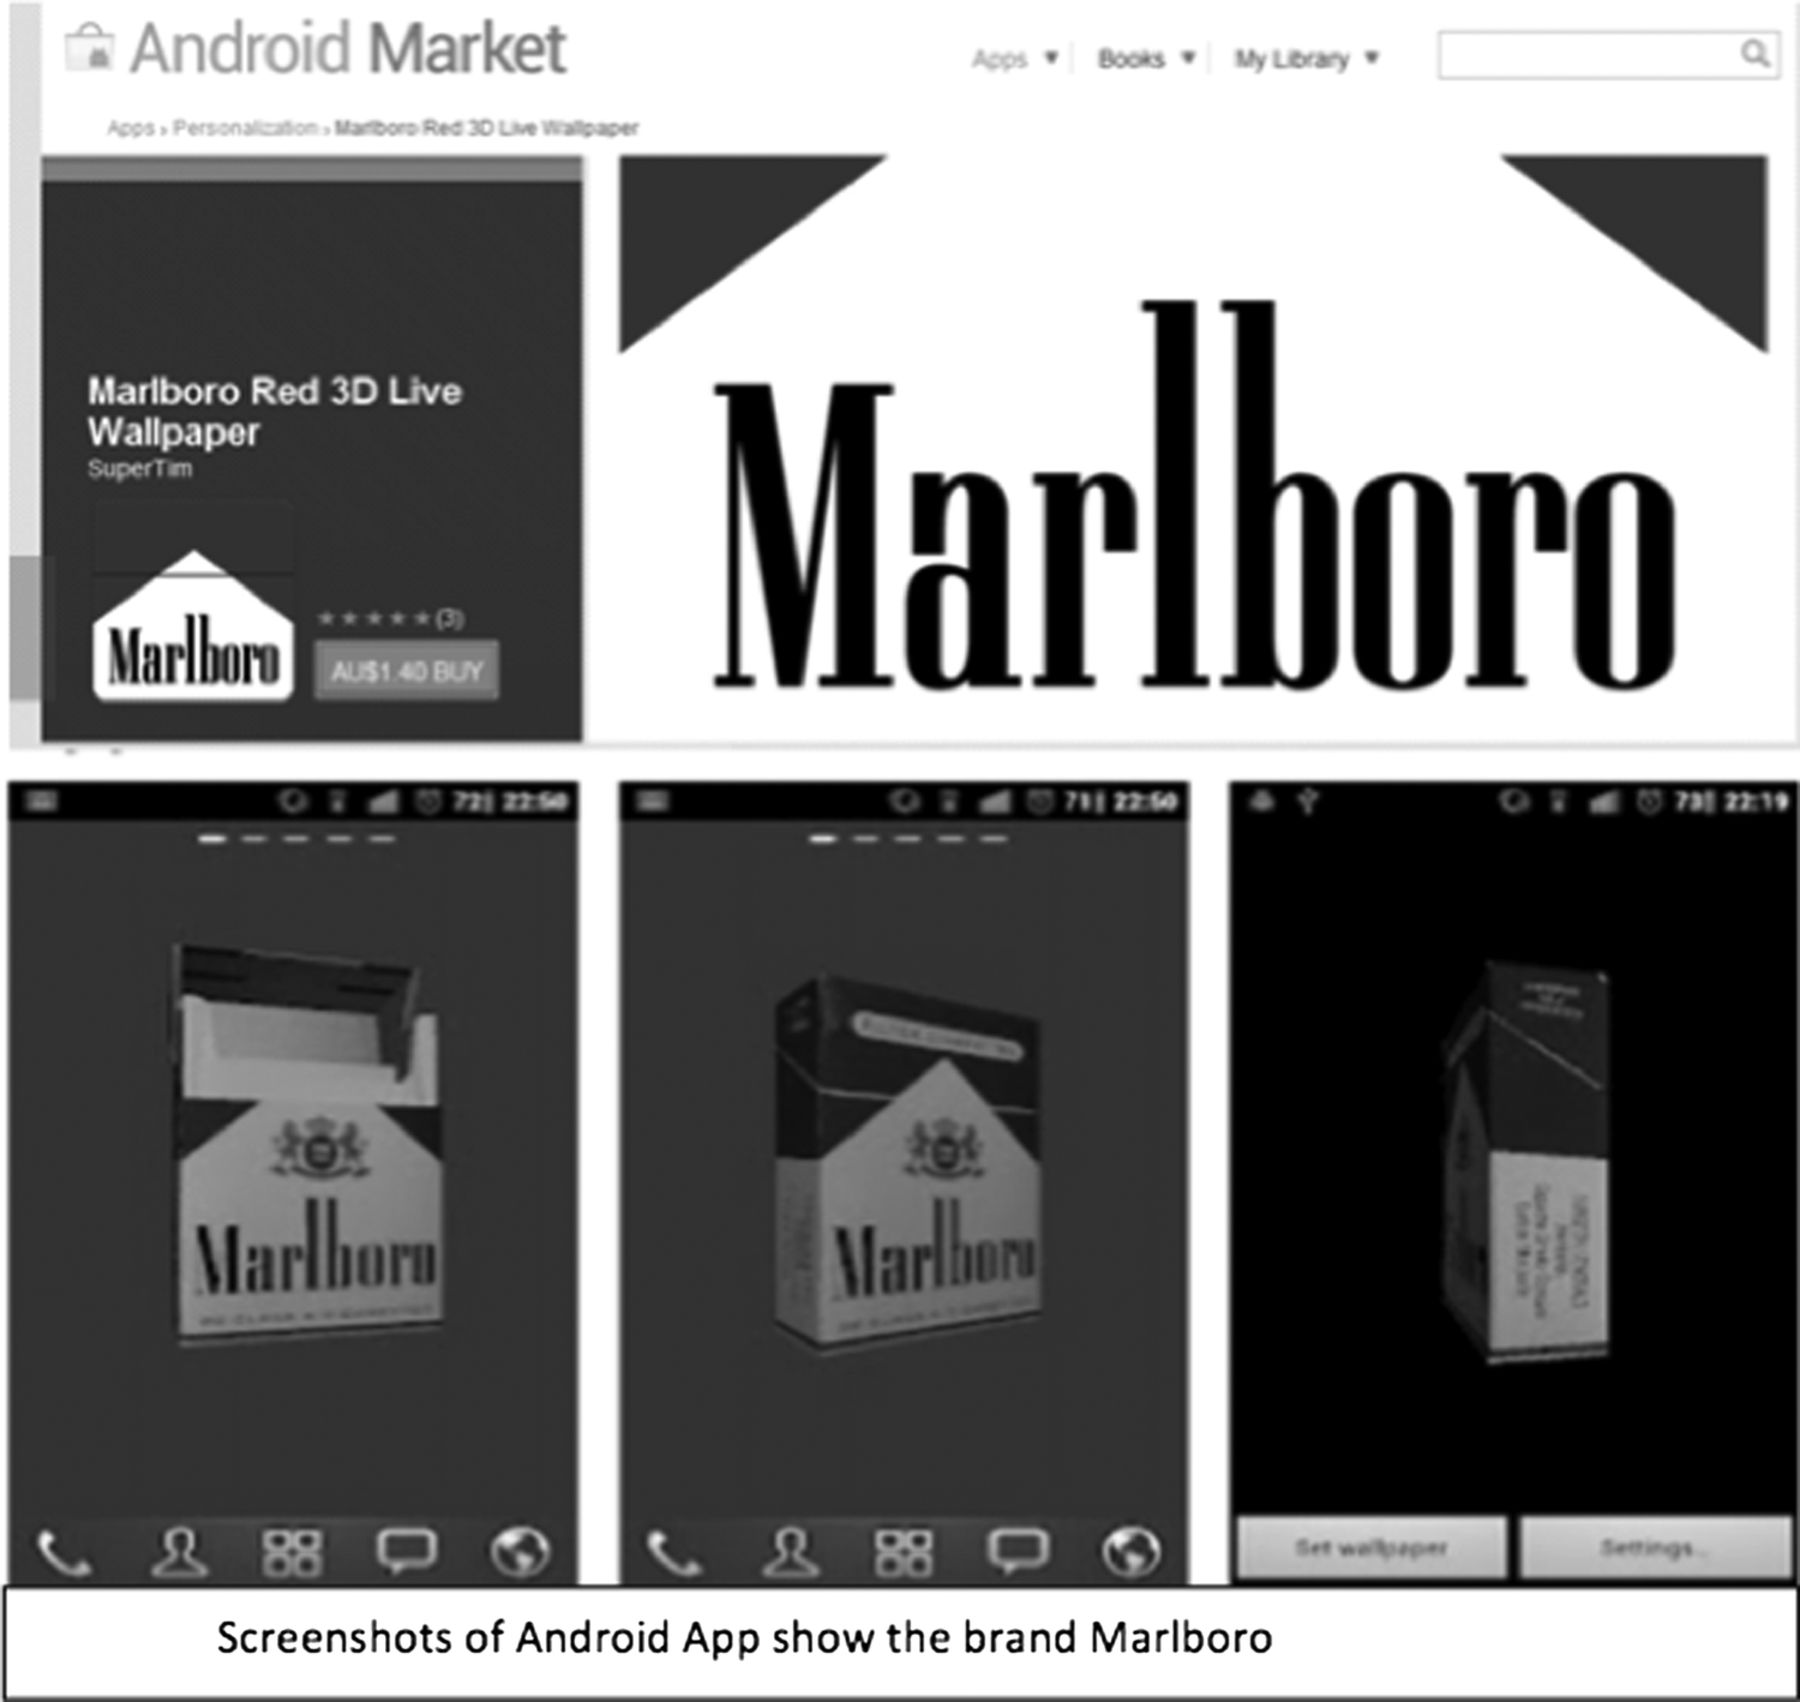 Pro-smoking apps for smartphones: the latest vehicle for the